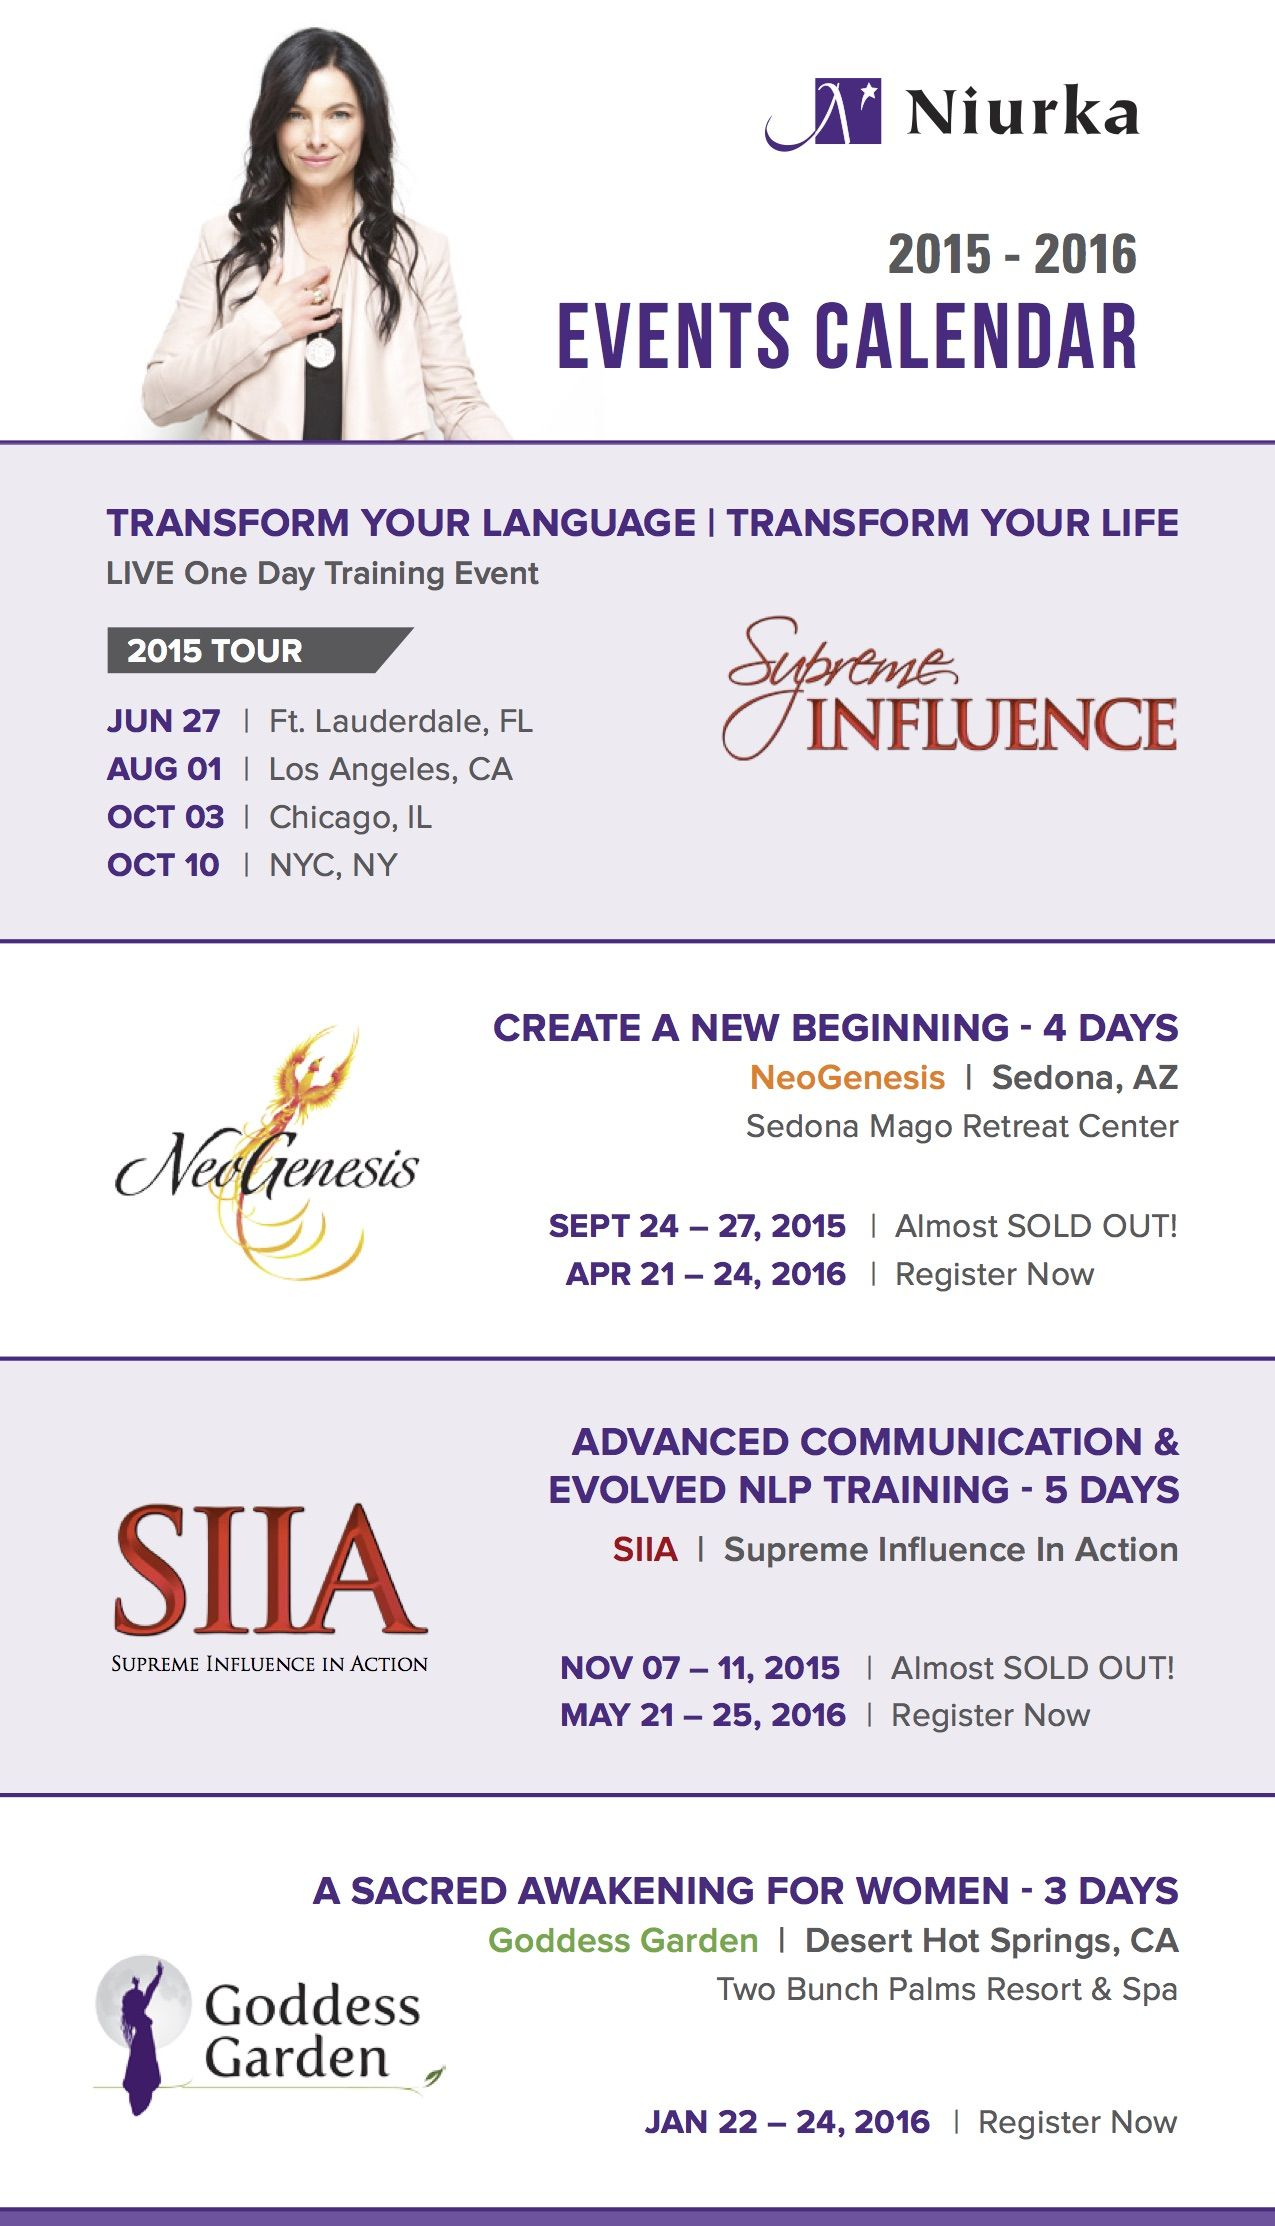 Siia Supreme Influence In Action Advanced Communication Evolved Nlp Training 5 Day Course With Niurka Communication Skills Event Calendar Nlp